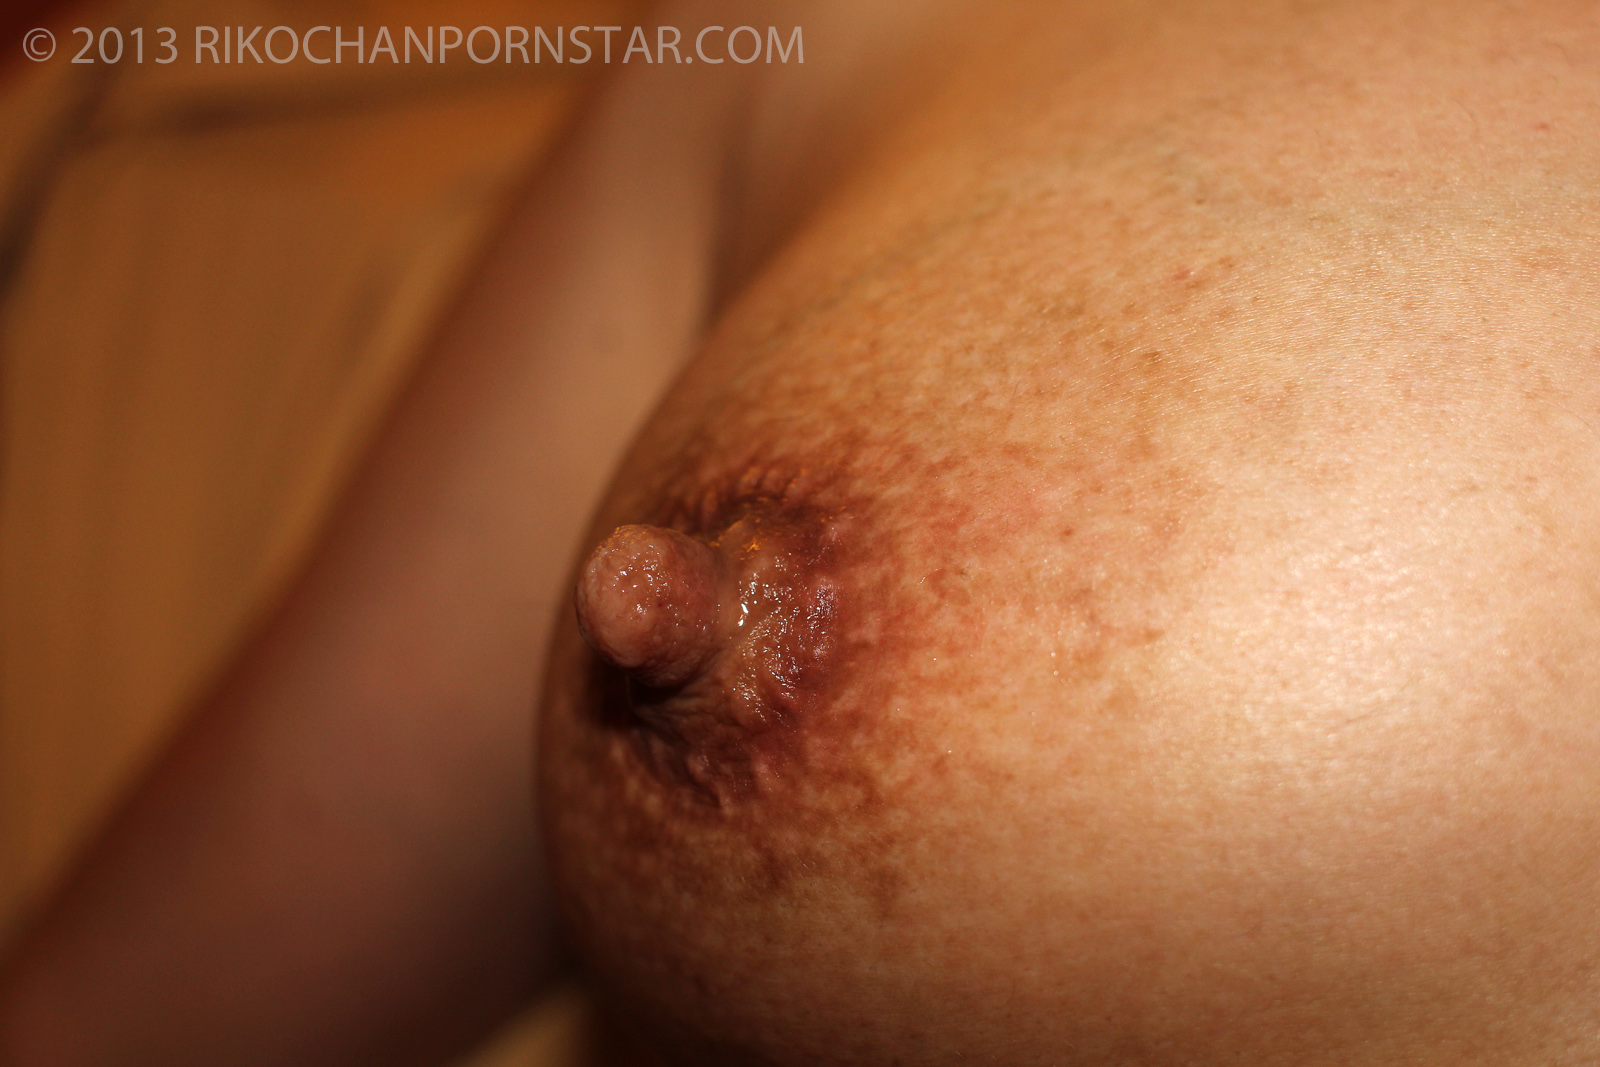 Japanese amateur Rikochan's breasts may small, but she has big sensitive nipples!